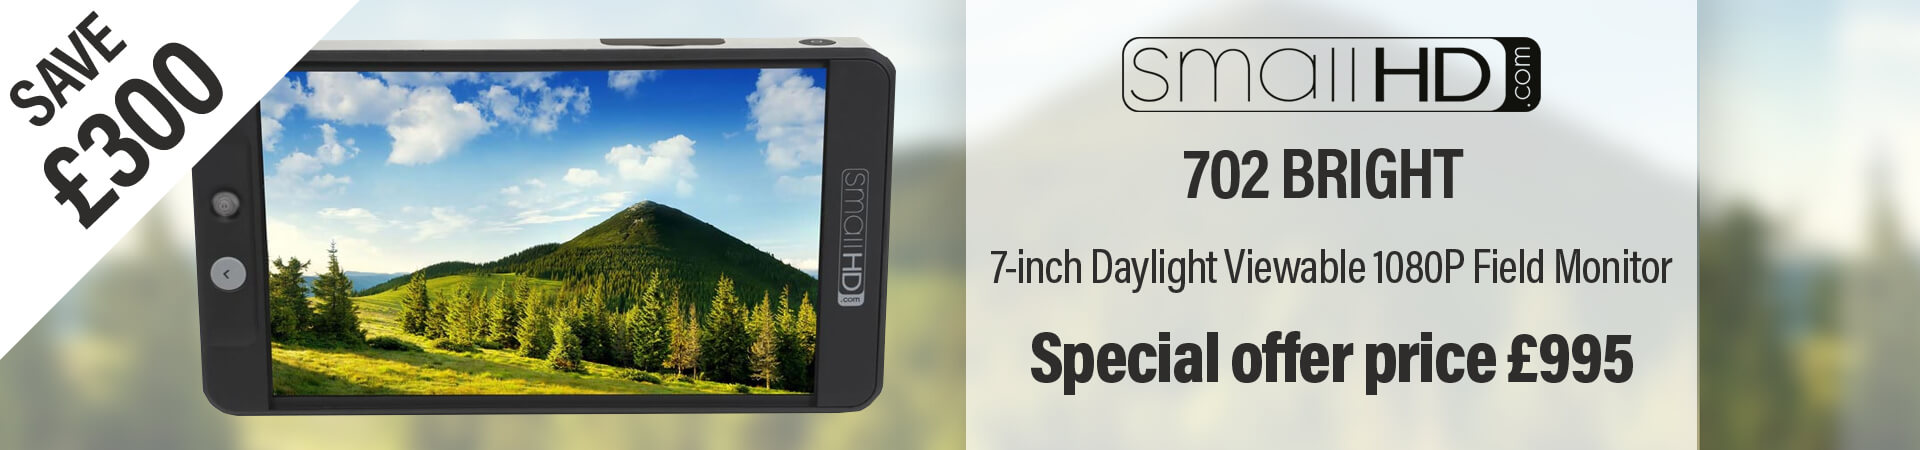 SmallHD 702 Bright Special Offer